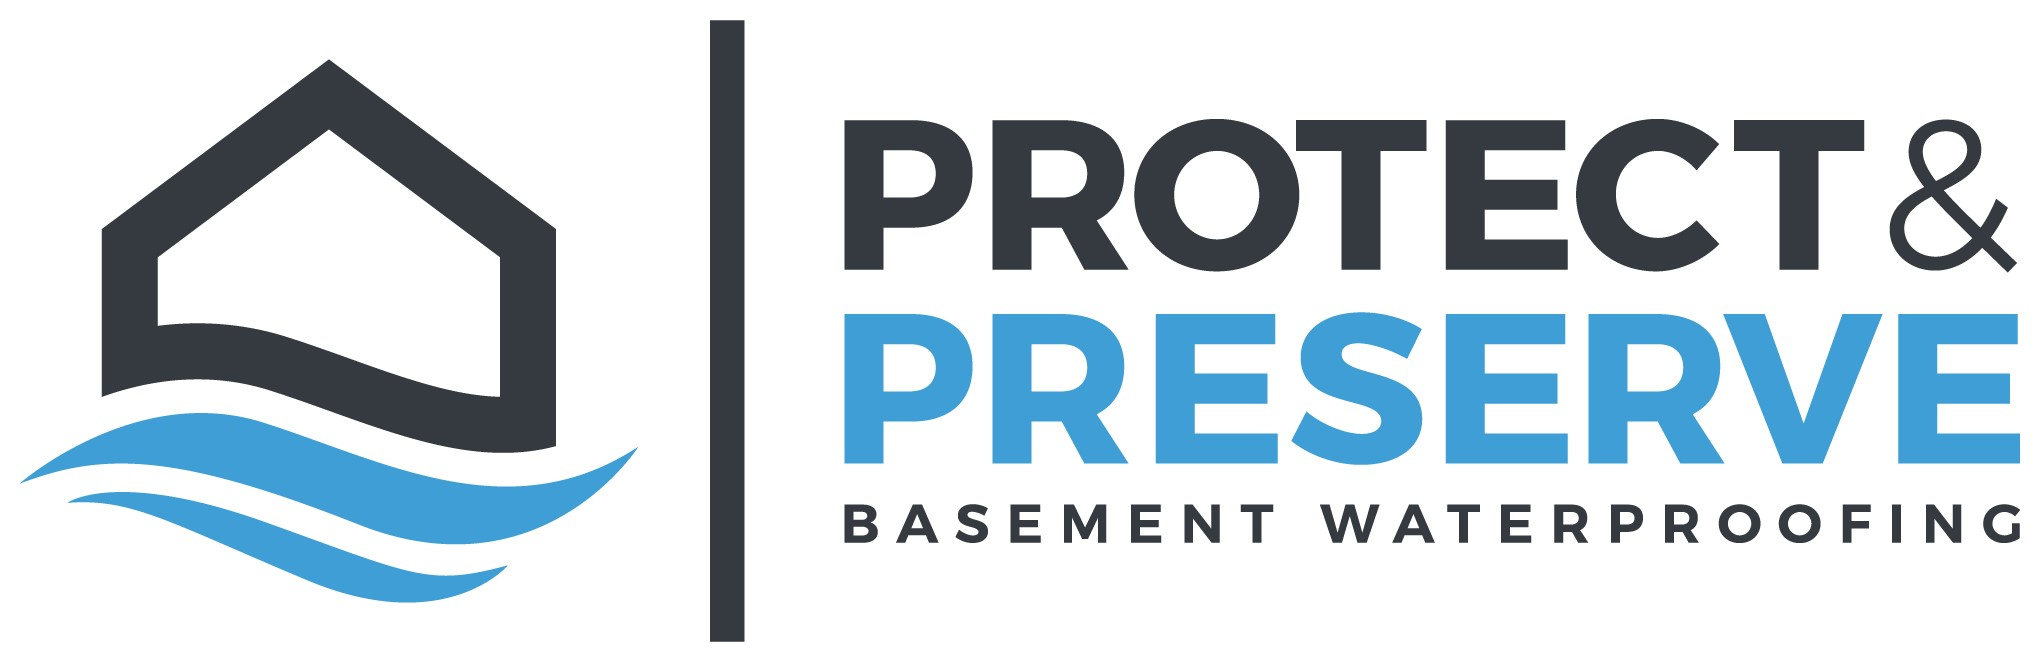 Protect and Preserve logo